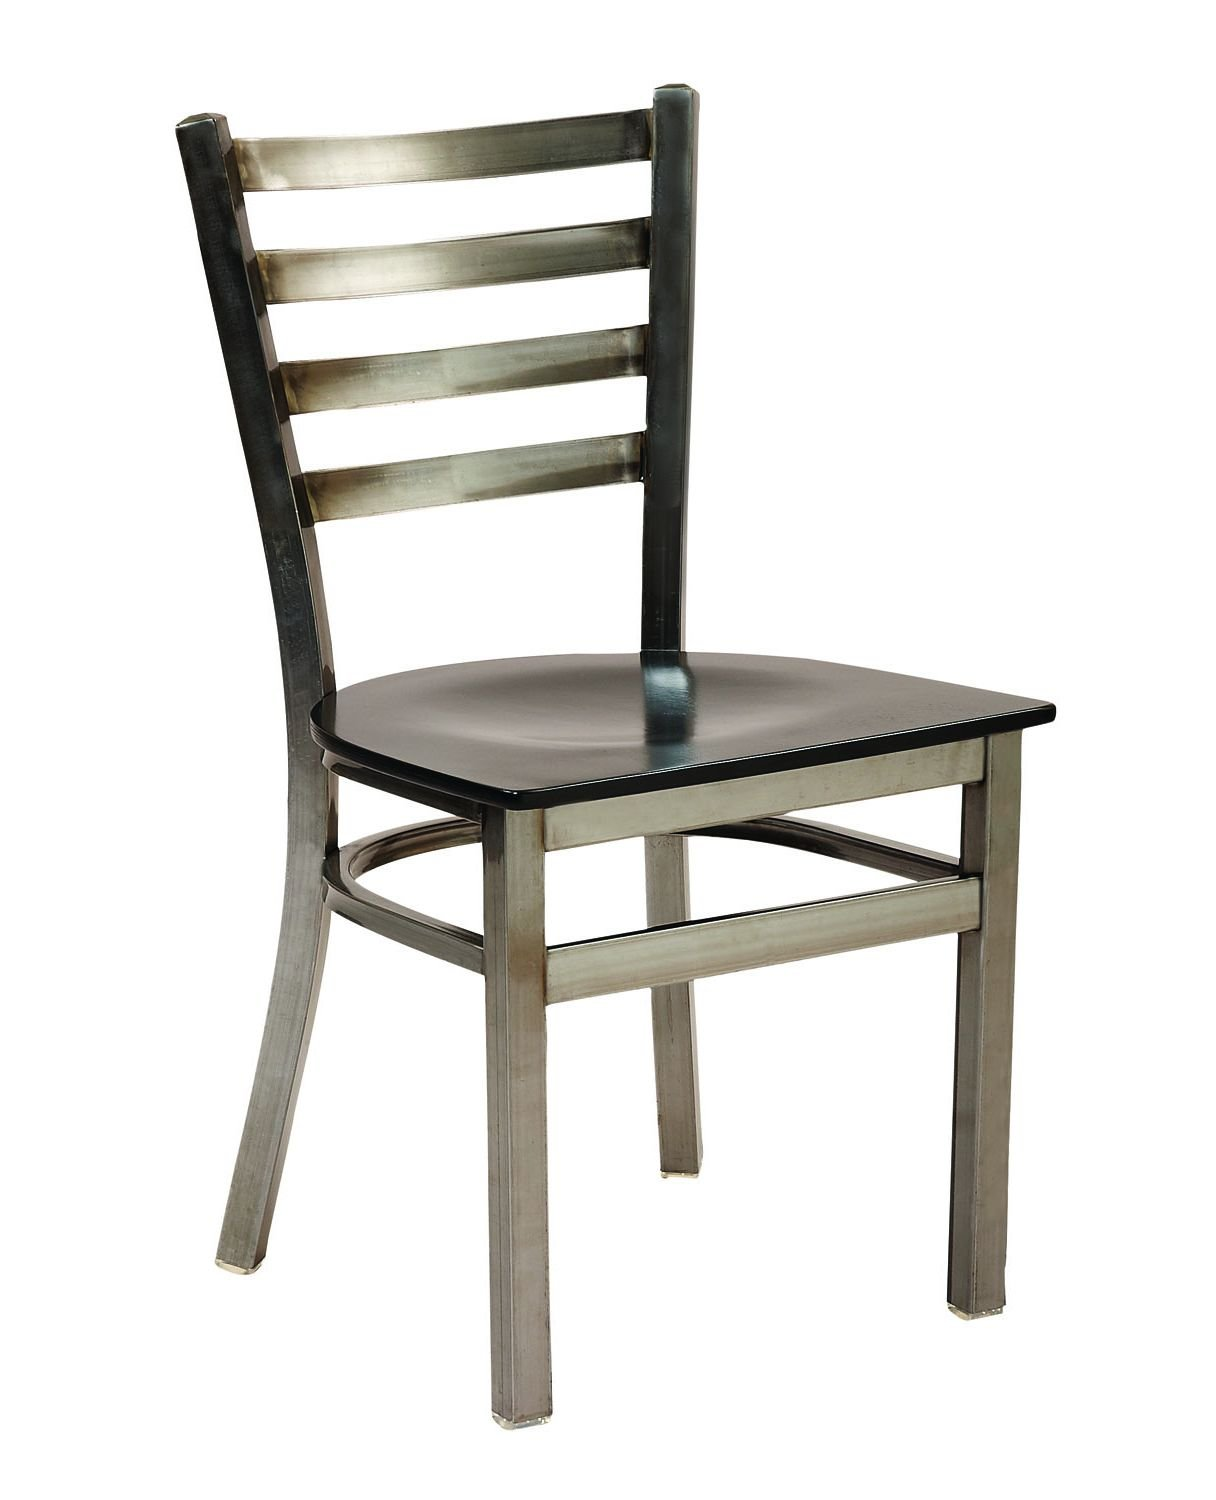 cafe chairs metal french desk chair g anda seating 513d ladder back restaurant